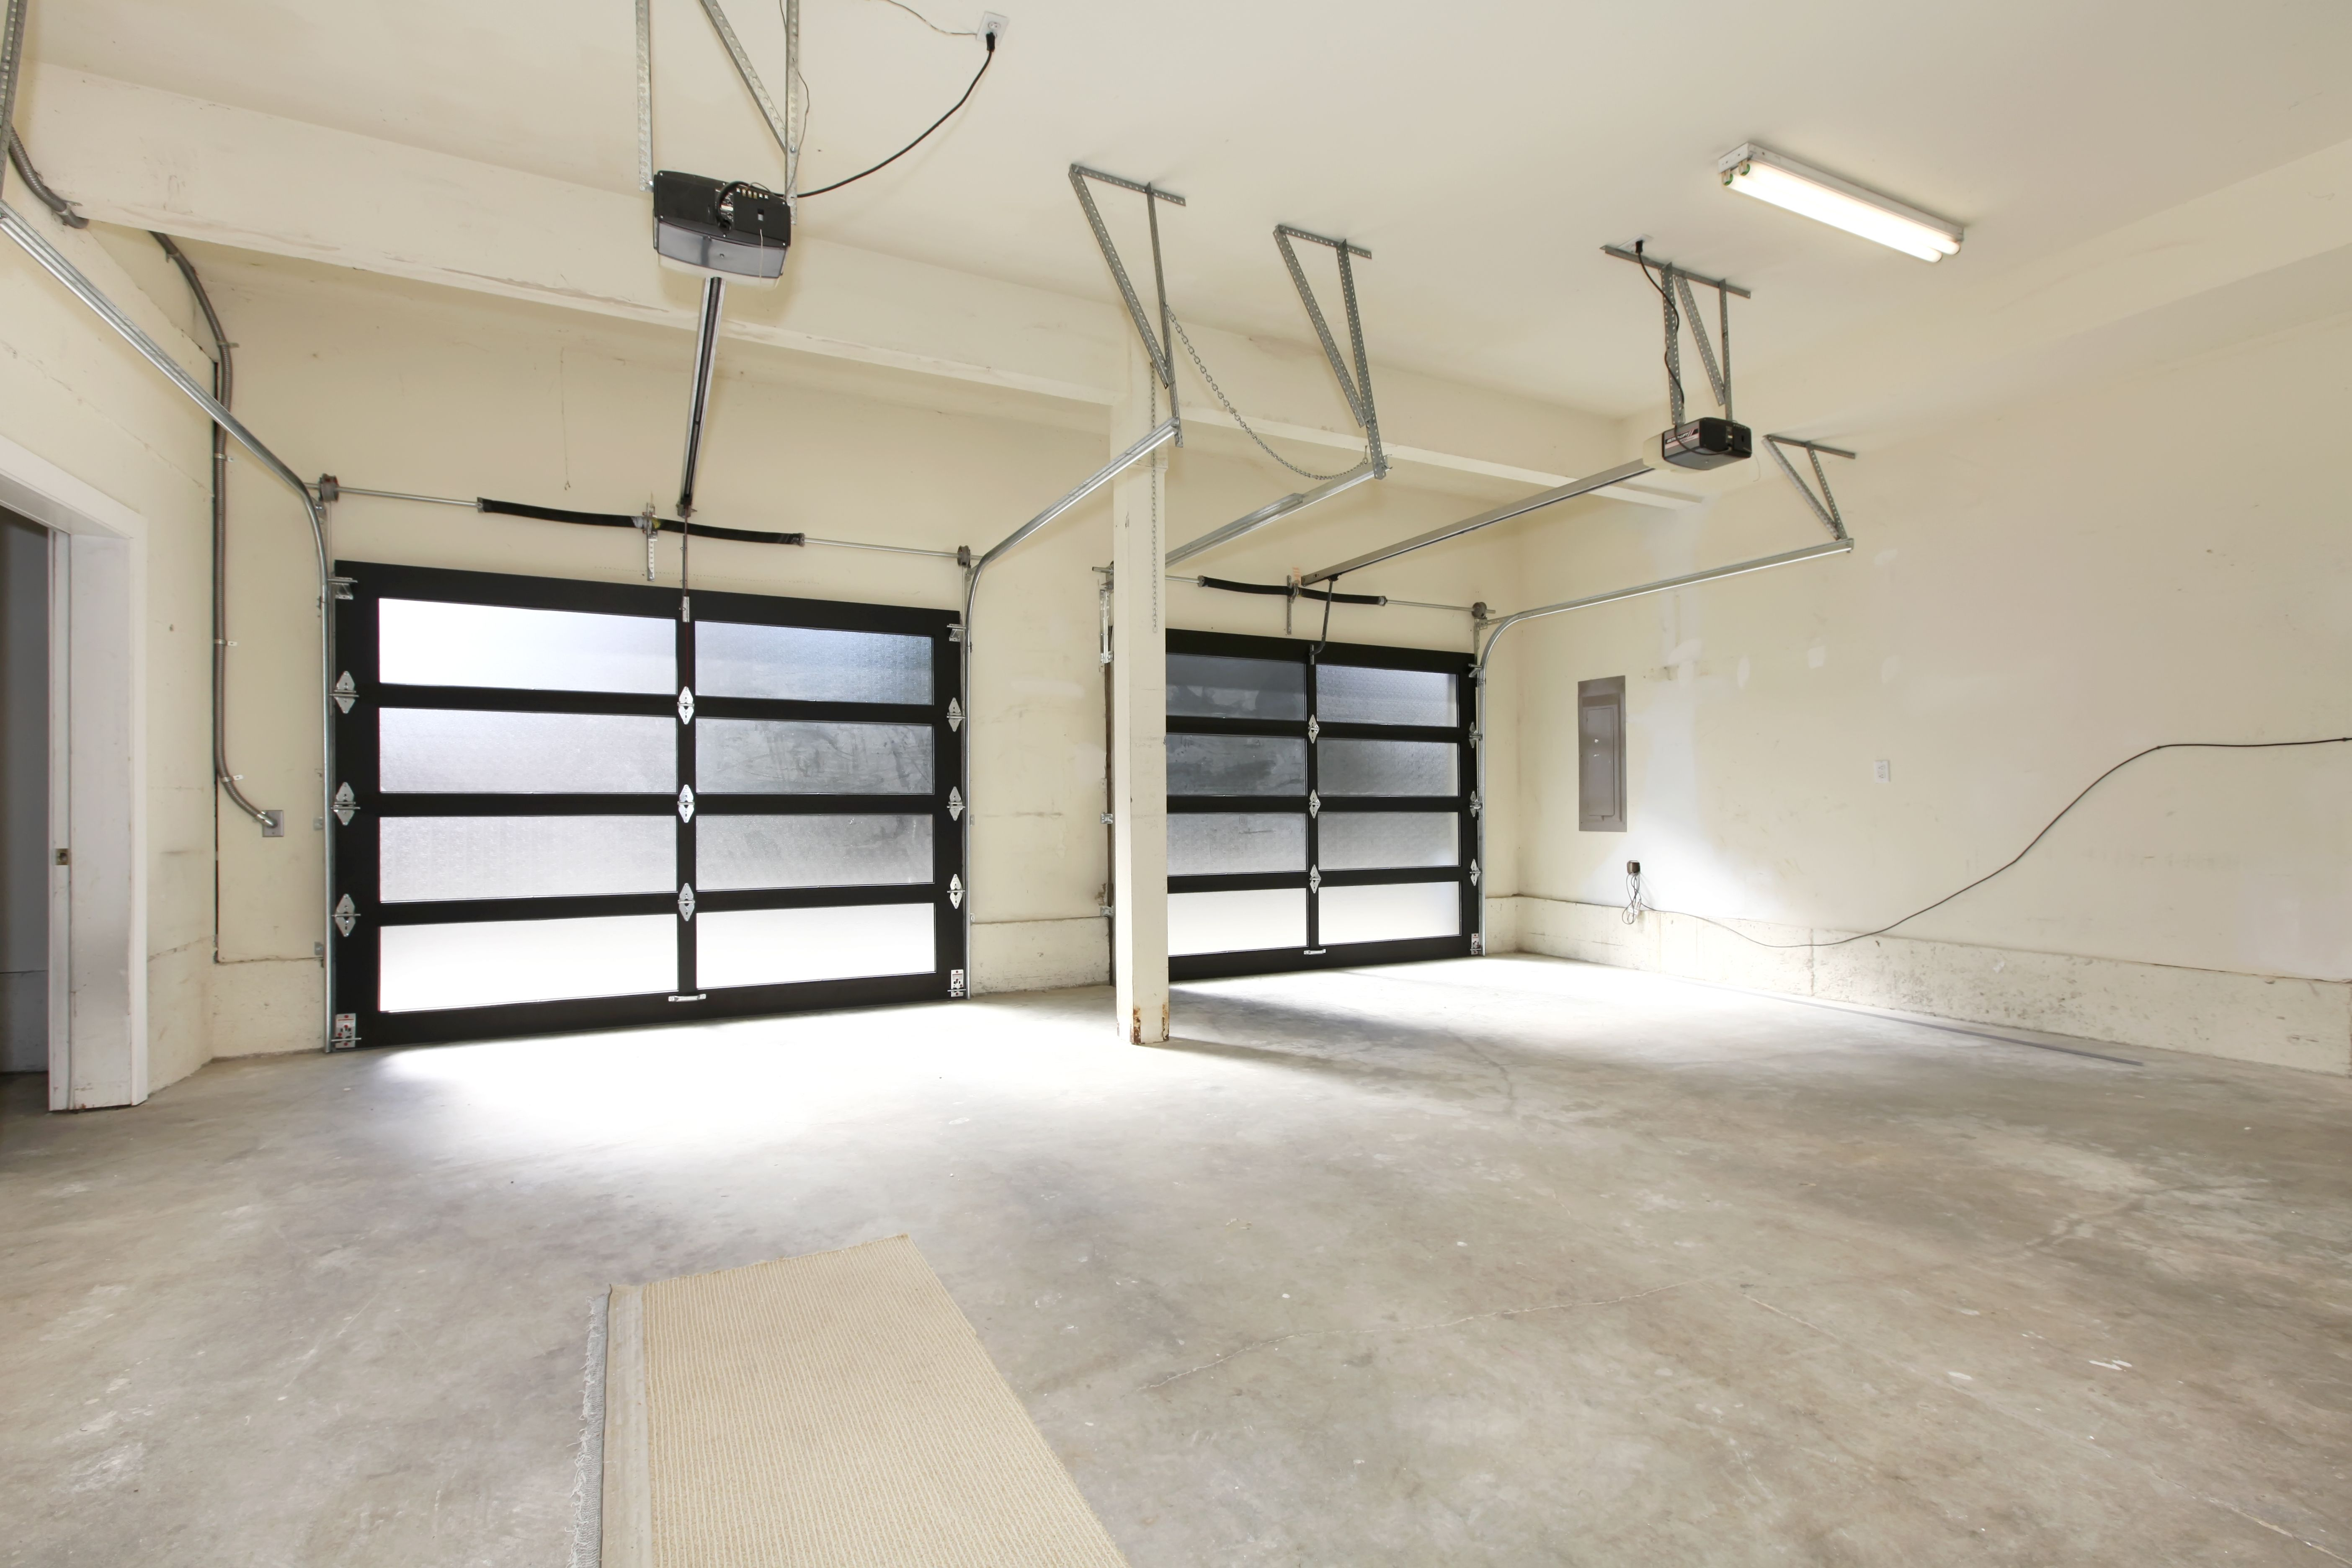 Thinking About Doing Some Changes To Your Garage Get An Estimate On